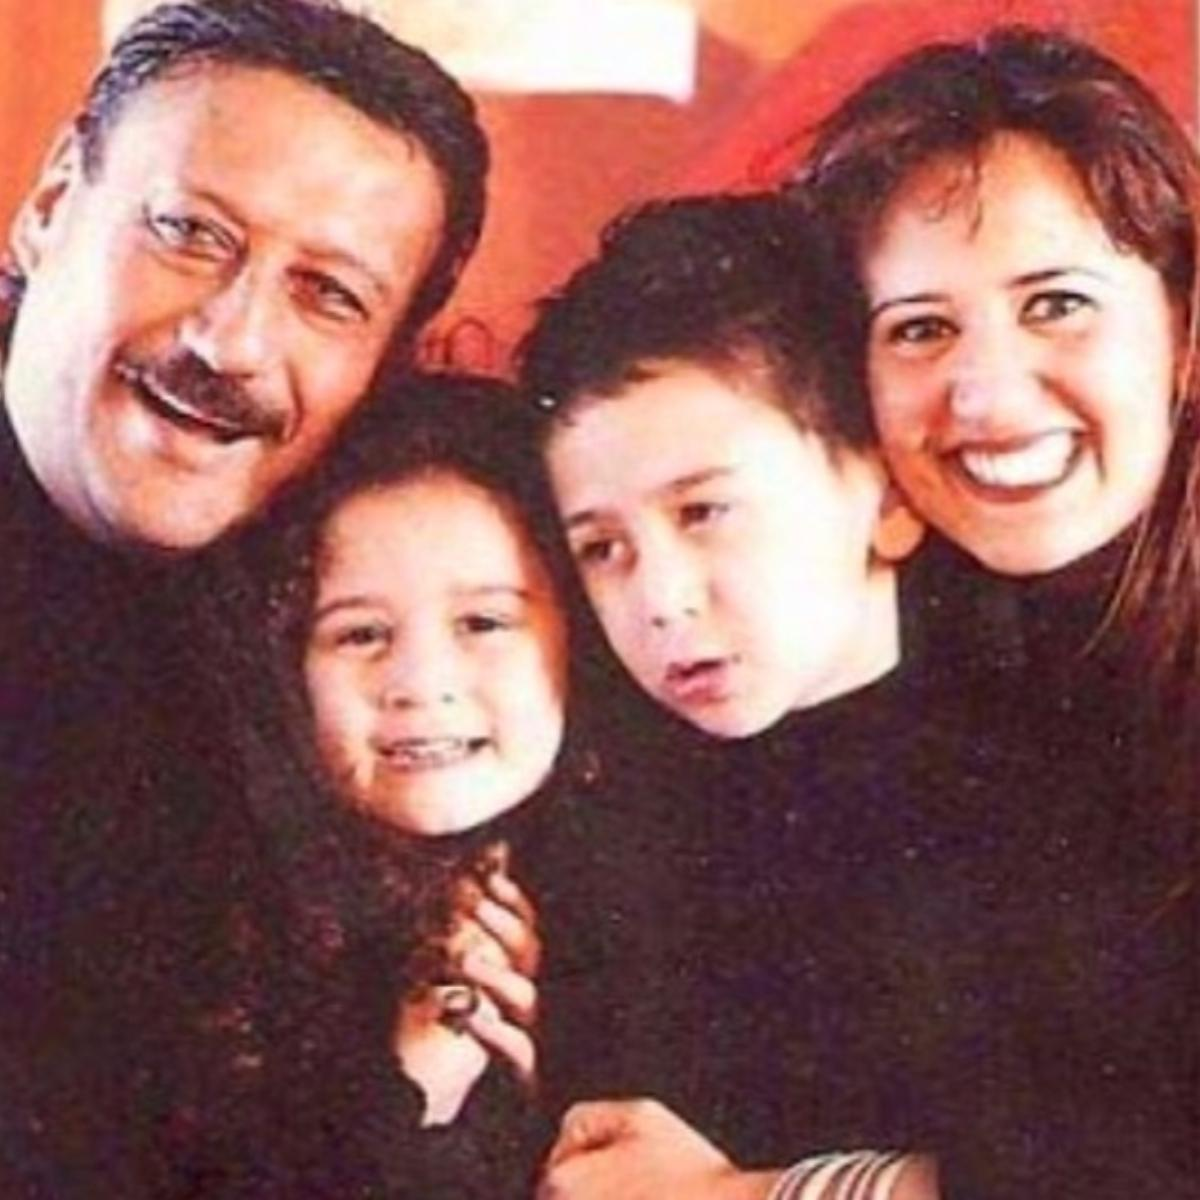 Jackie Shroff's adorable family PHOTOS with Tiger Shroff & Krishna prove he shares a great bond with them